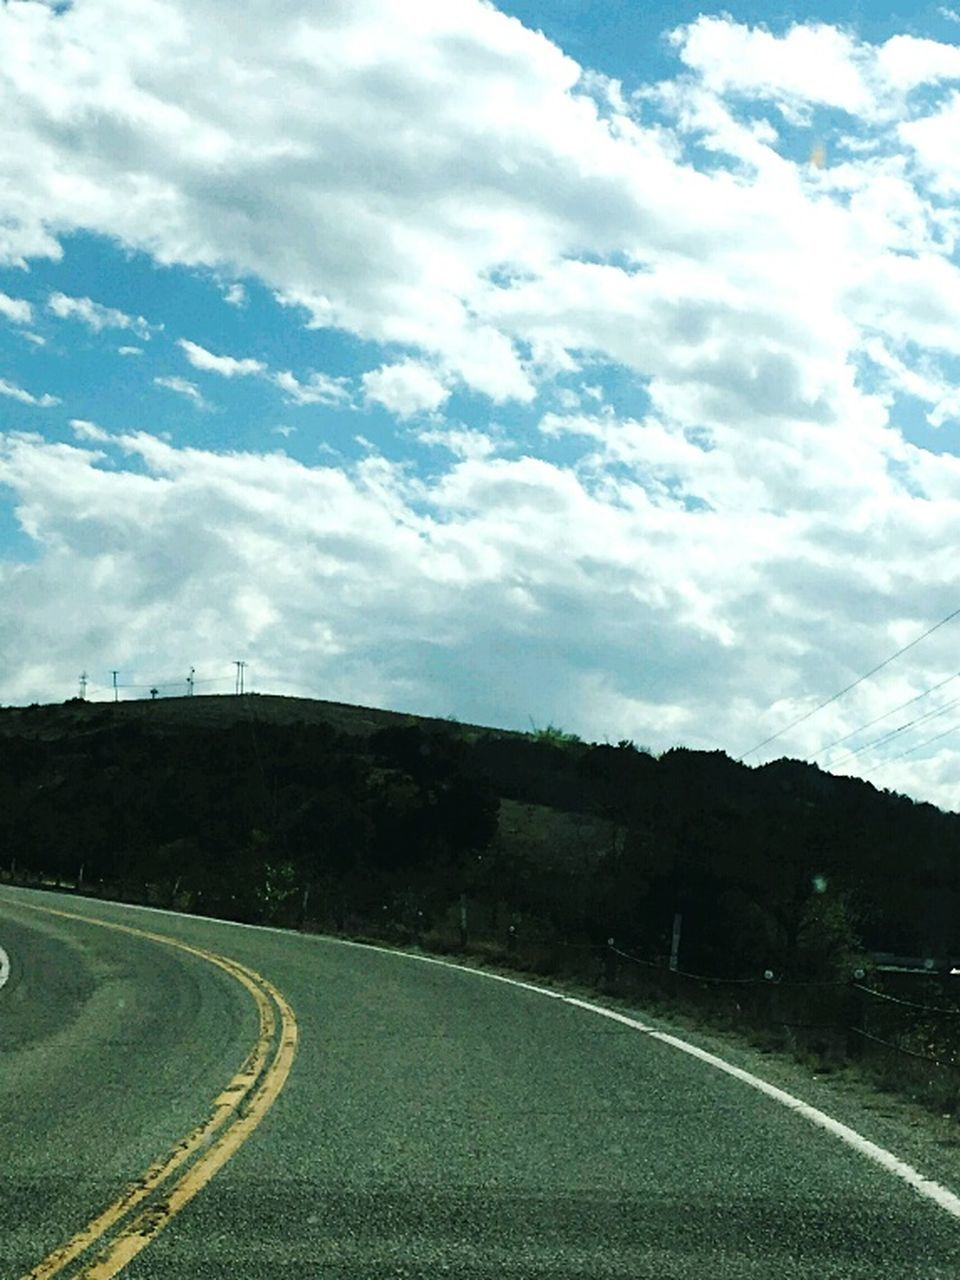 road, transportation, the way forward, highway, landscape, sky, curve, no people, street, nature, scenics, winding road, cloud - sky, outdoors, day, mountain, beauty in nature, tree